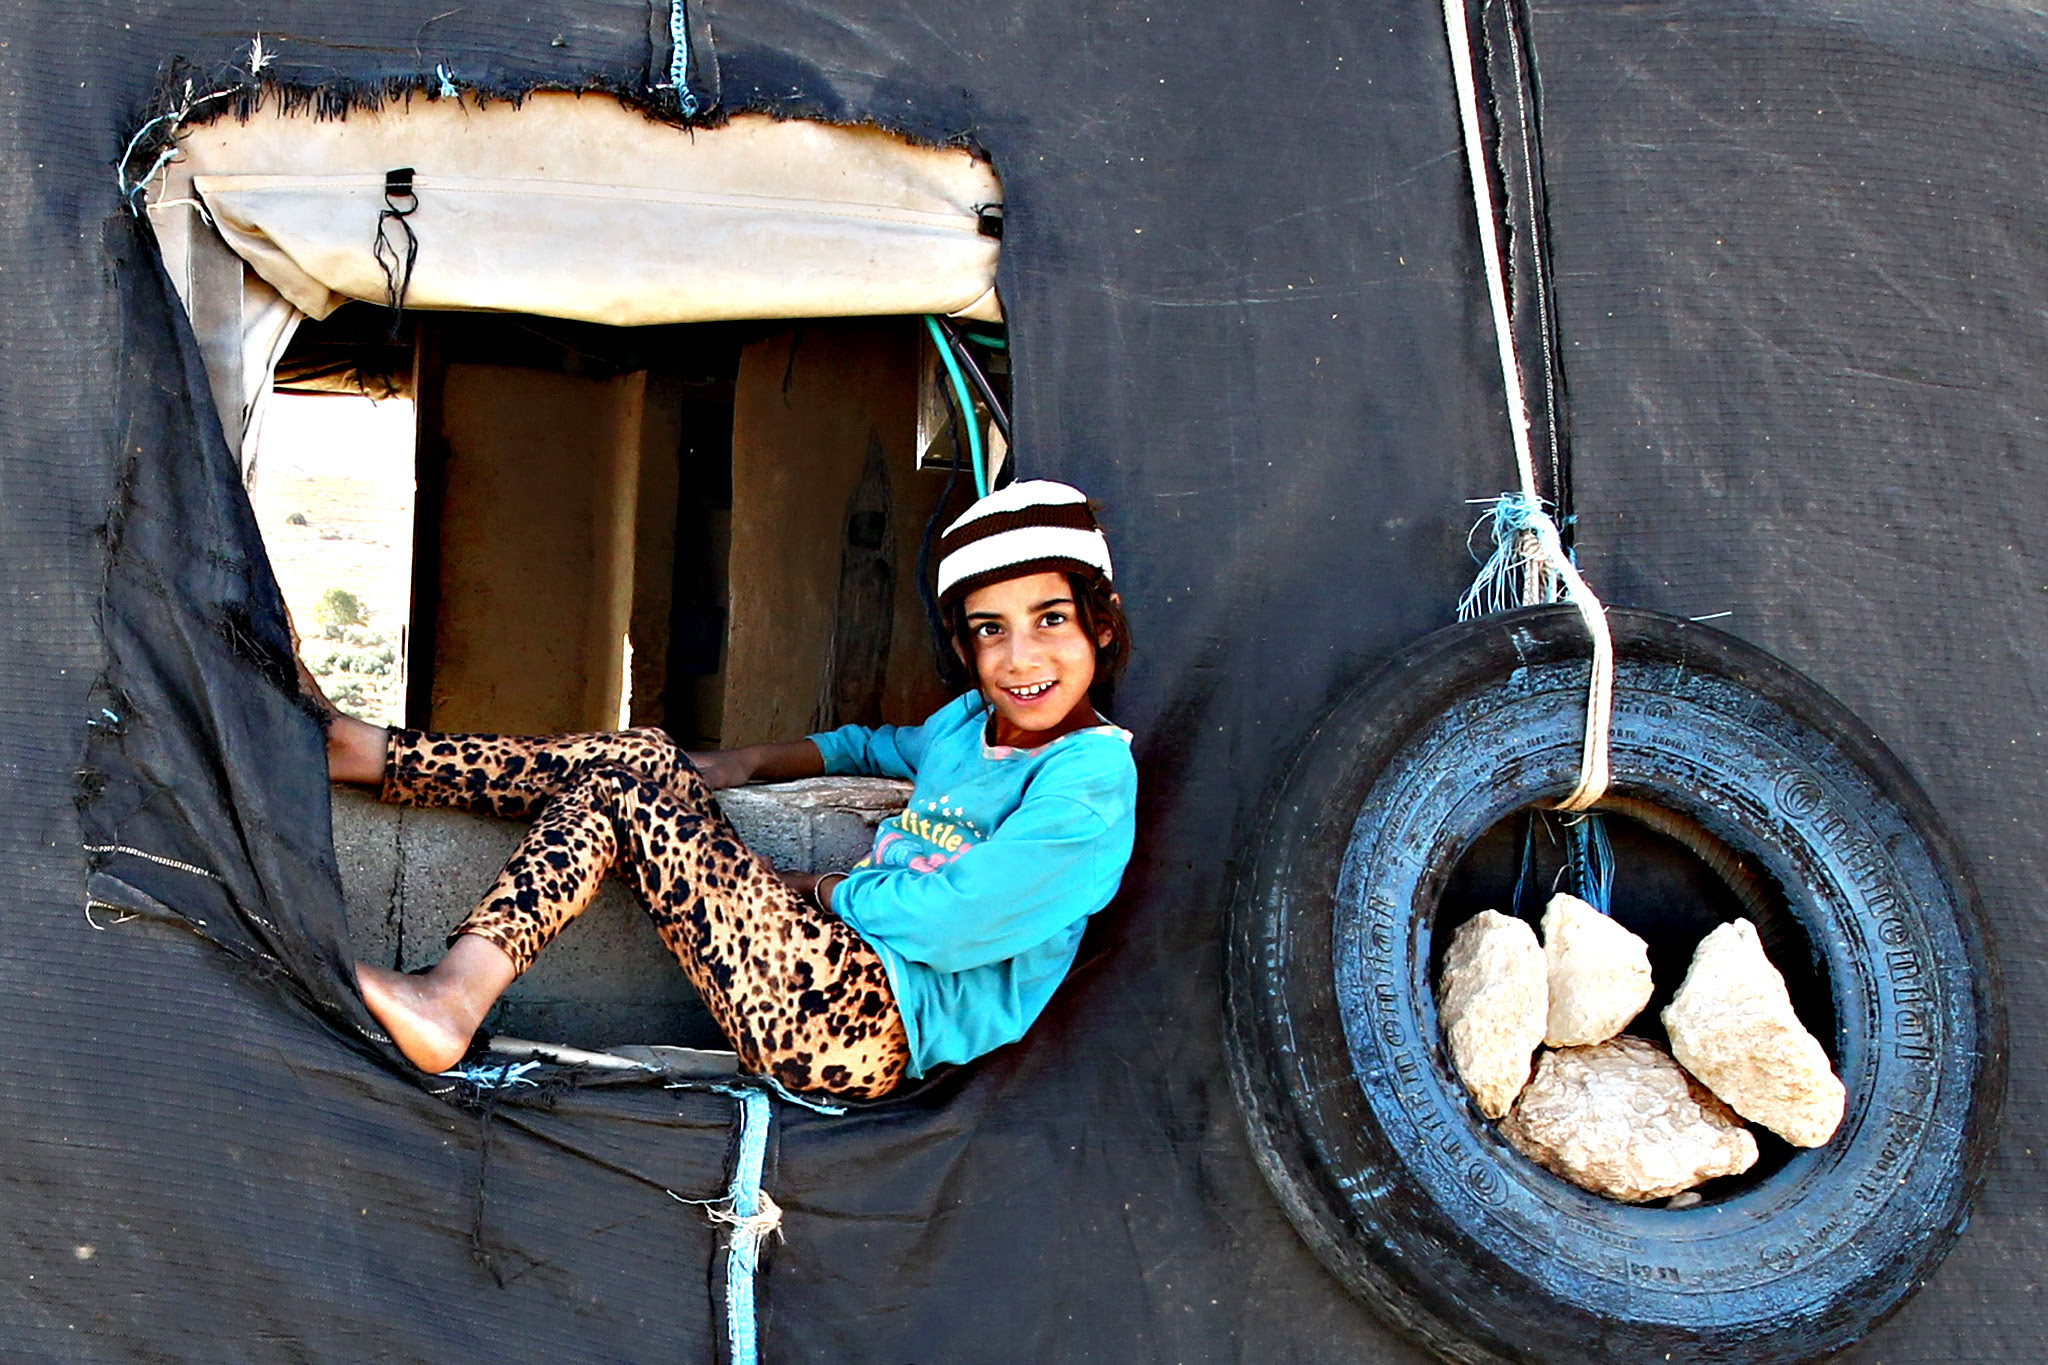 A Palestinian girl plays outside a tent in the southern West Bank village of Susya on Wednesday. Israel's High Court ruled in May that Susya's 340 residents could be relocated and its structures demolished